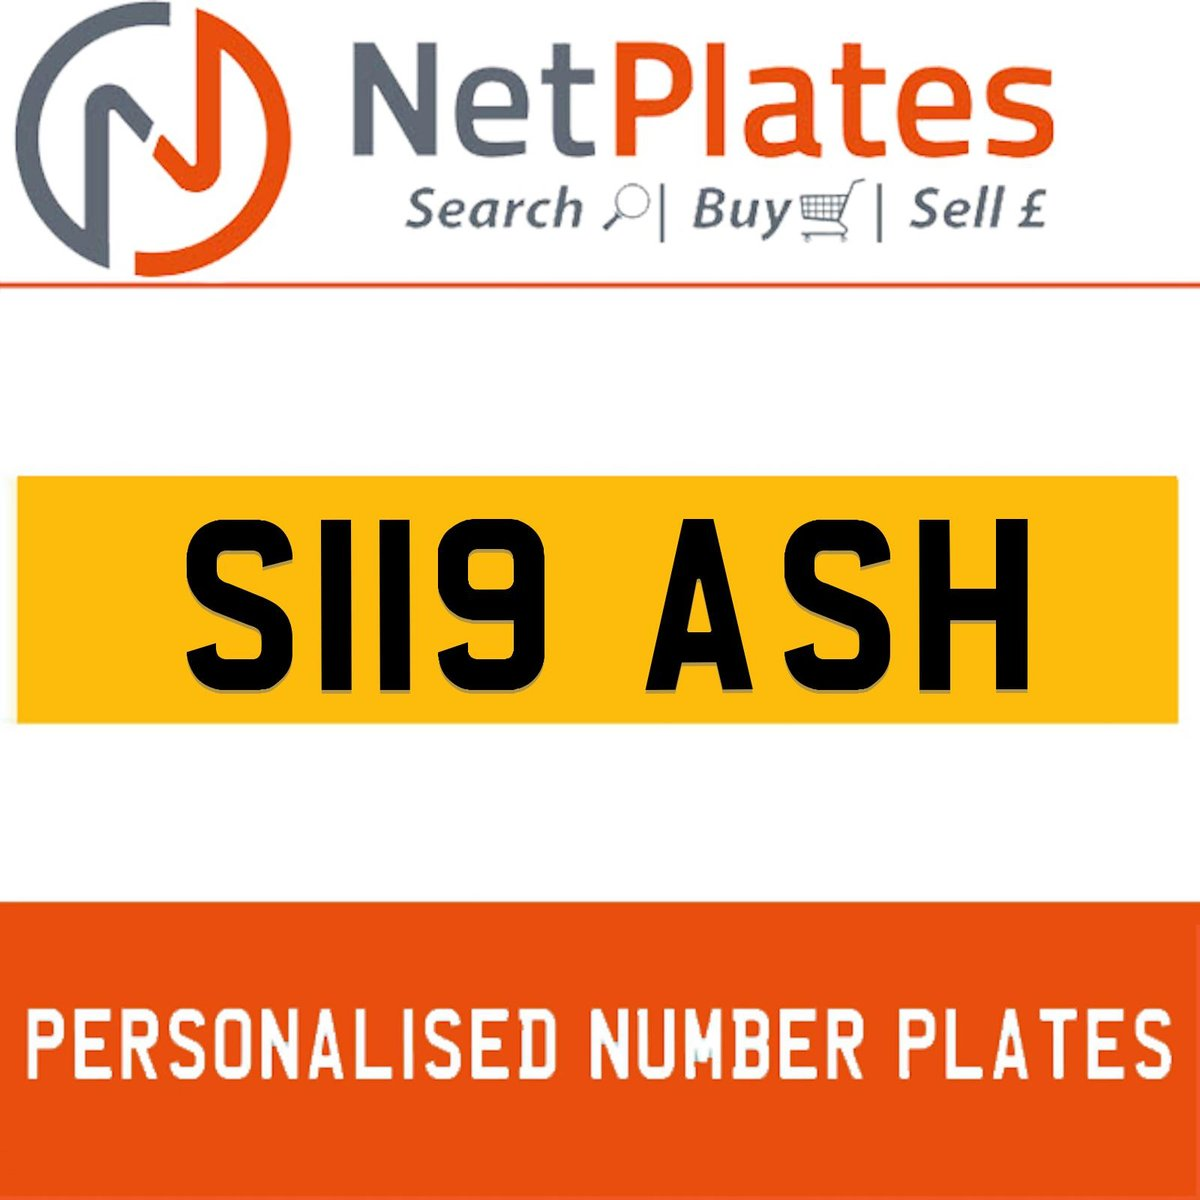 S119 ASH PERSONALISED PRIVATE CHERISHED DVLA NUMBER PLATE For Sale (picture 1 of 5)